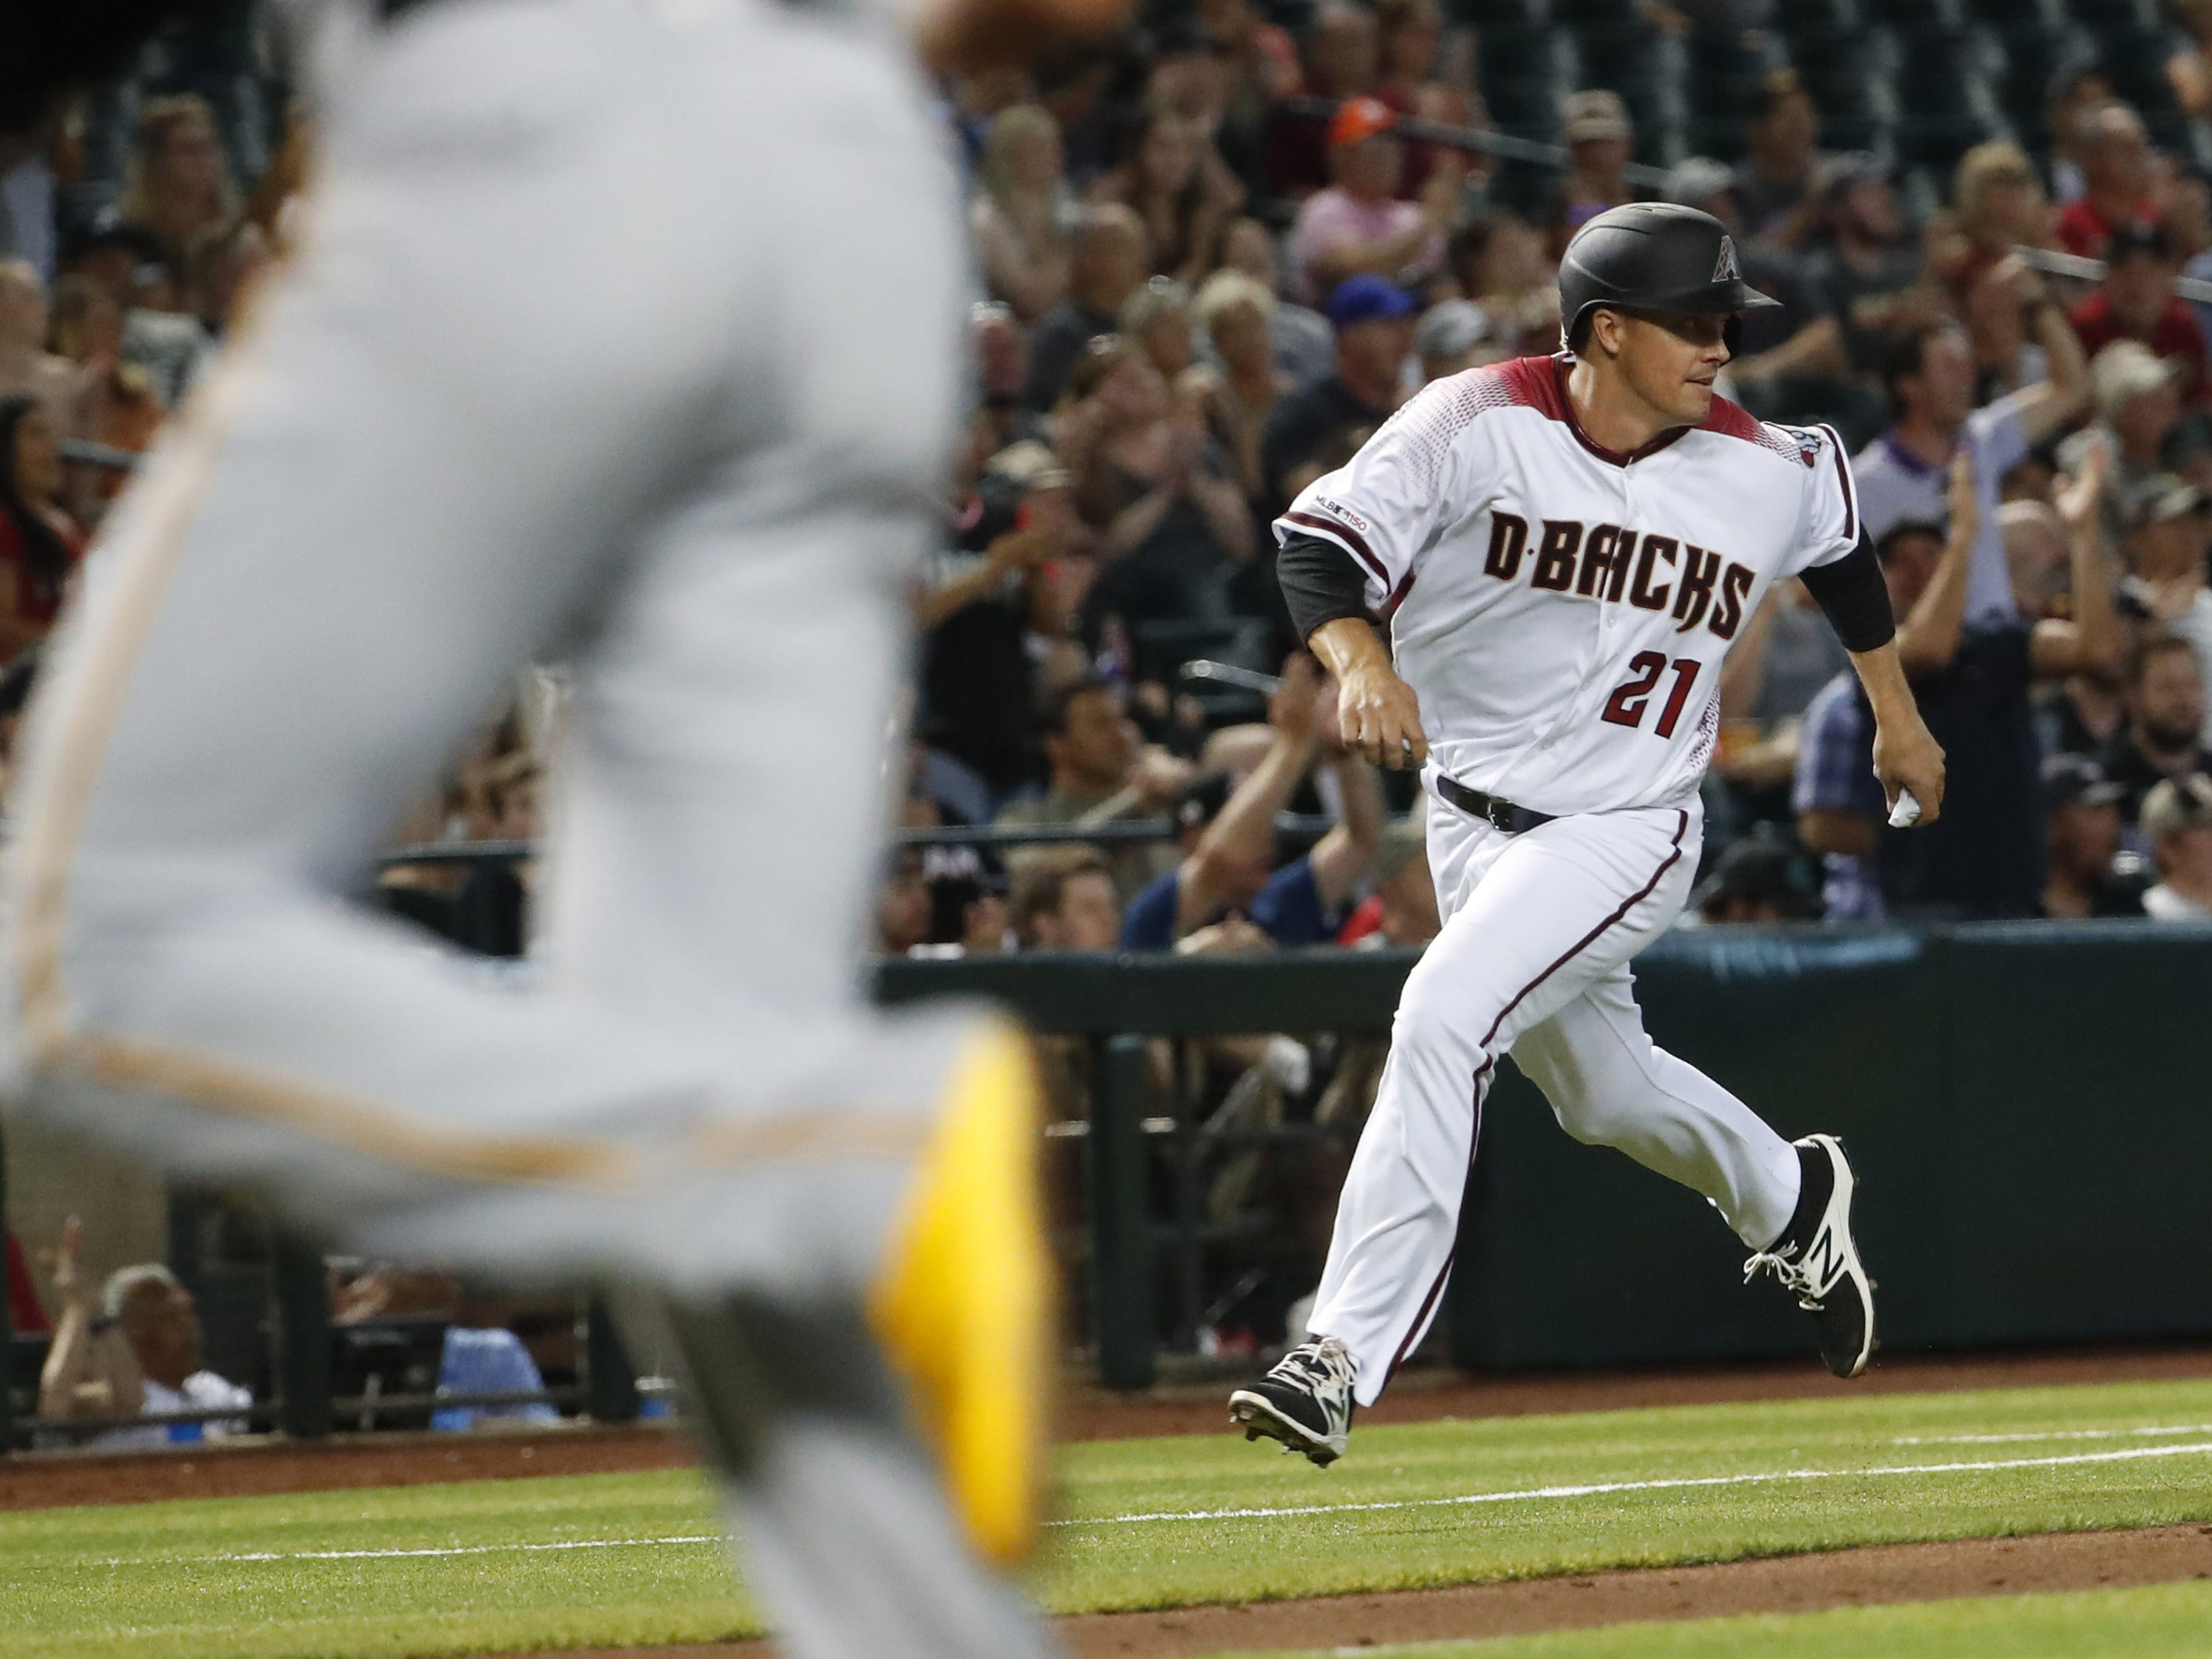 Arizona Diamondbacks starting pitcher Zack Greinke (21) rounds third base before scoring against the Pittsburgh Pirates during the fourth inning. at Chase Field in Phoenix, Ariz. May 15, 2019.